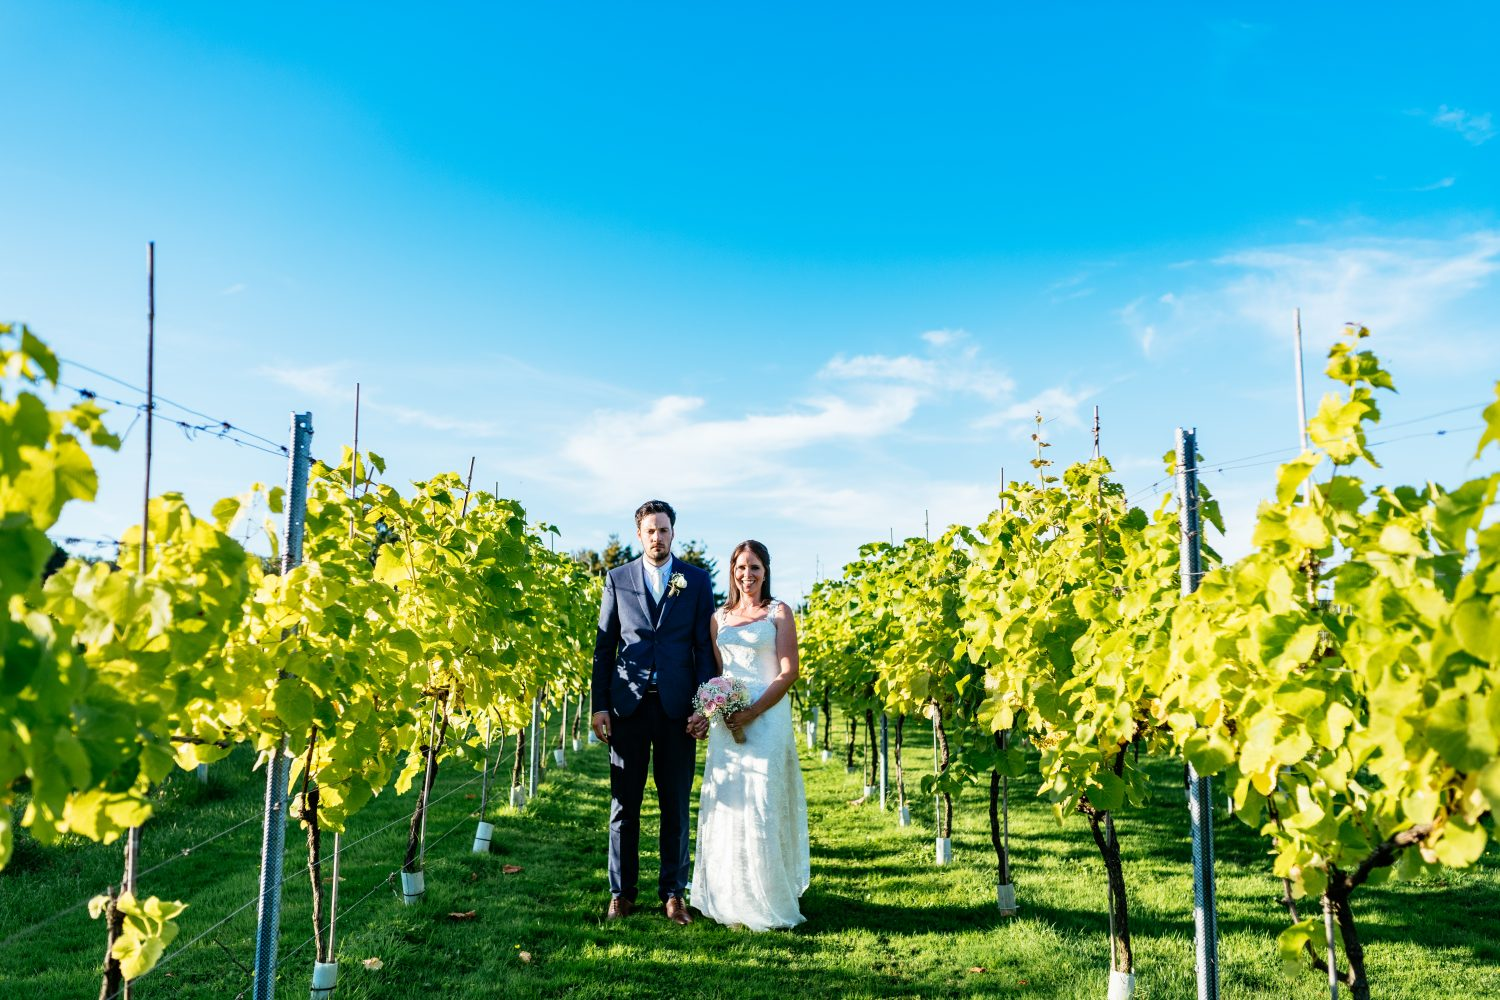 It's hard to not have epic photos from your wedding at Llanerch Vineyard